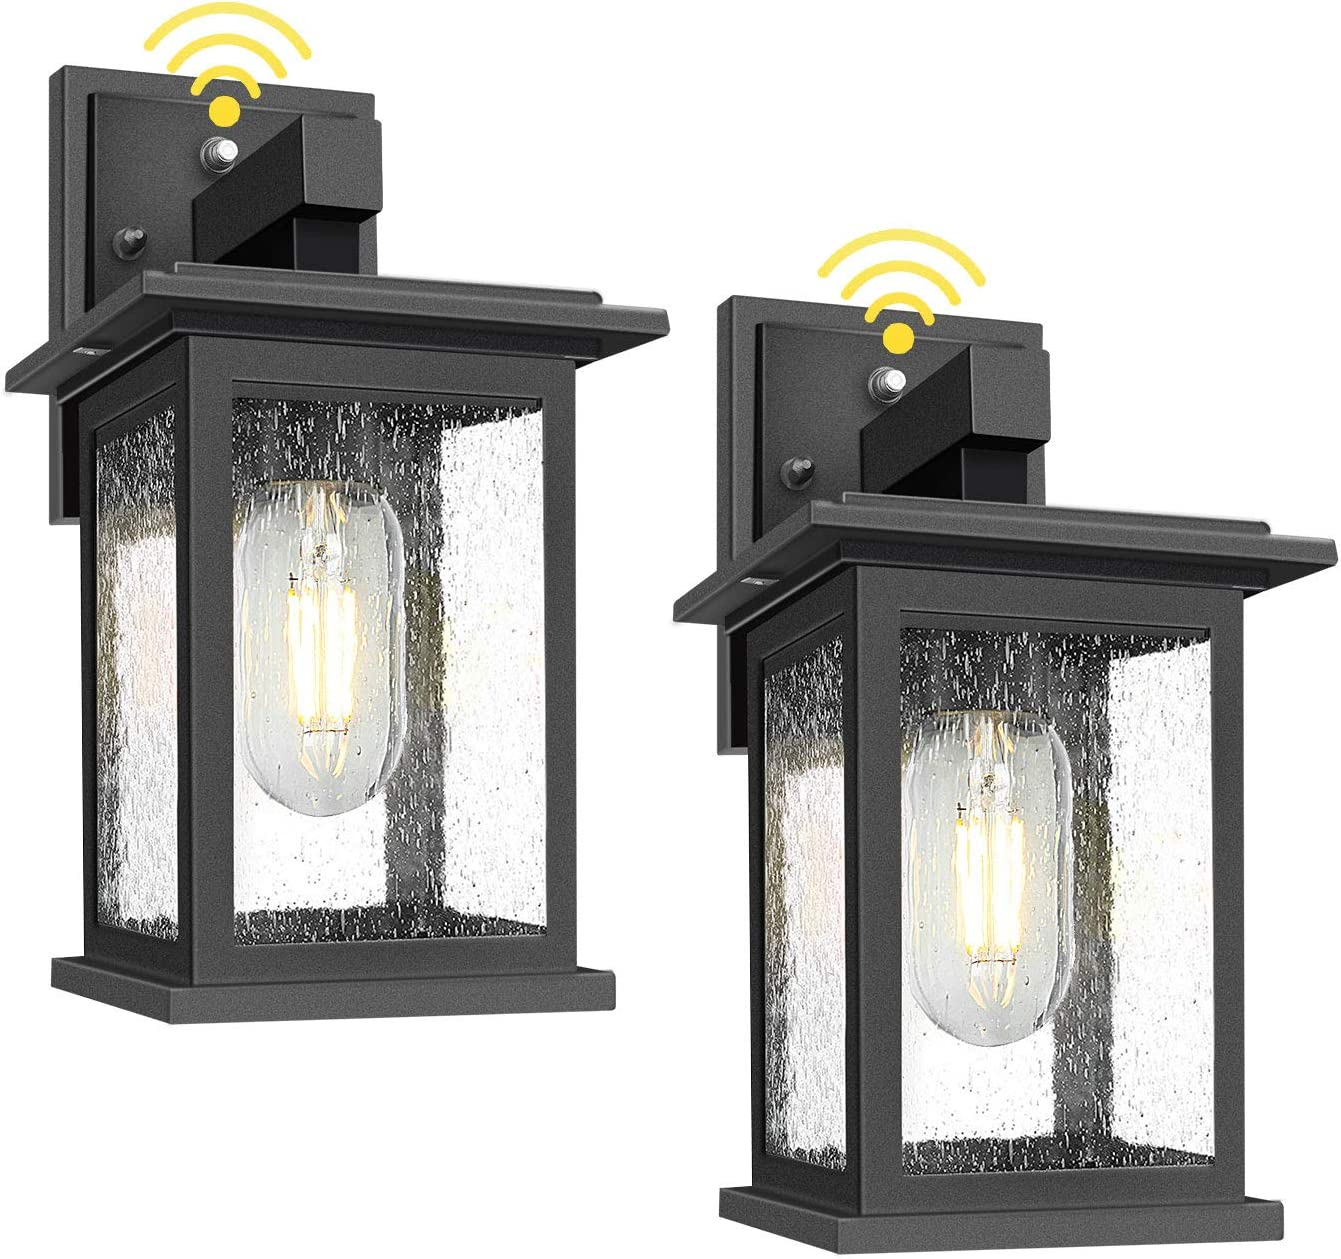 2 Pack Outdoor Wall Lanterns With Dusk To Dawn Sensor Photocell Exterior Porch Light Fixtures Waterproof Anti Rust Matte Black Outside Wall Sconces With Seeded Glass For Entryway Garage E26 Socket